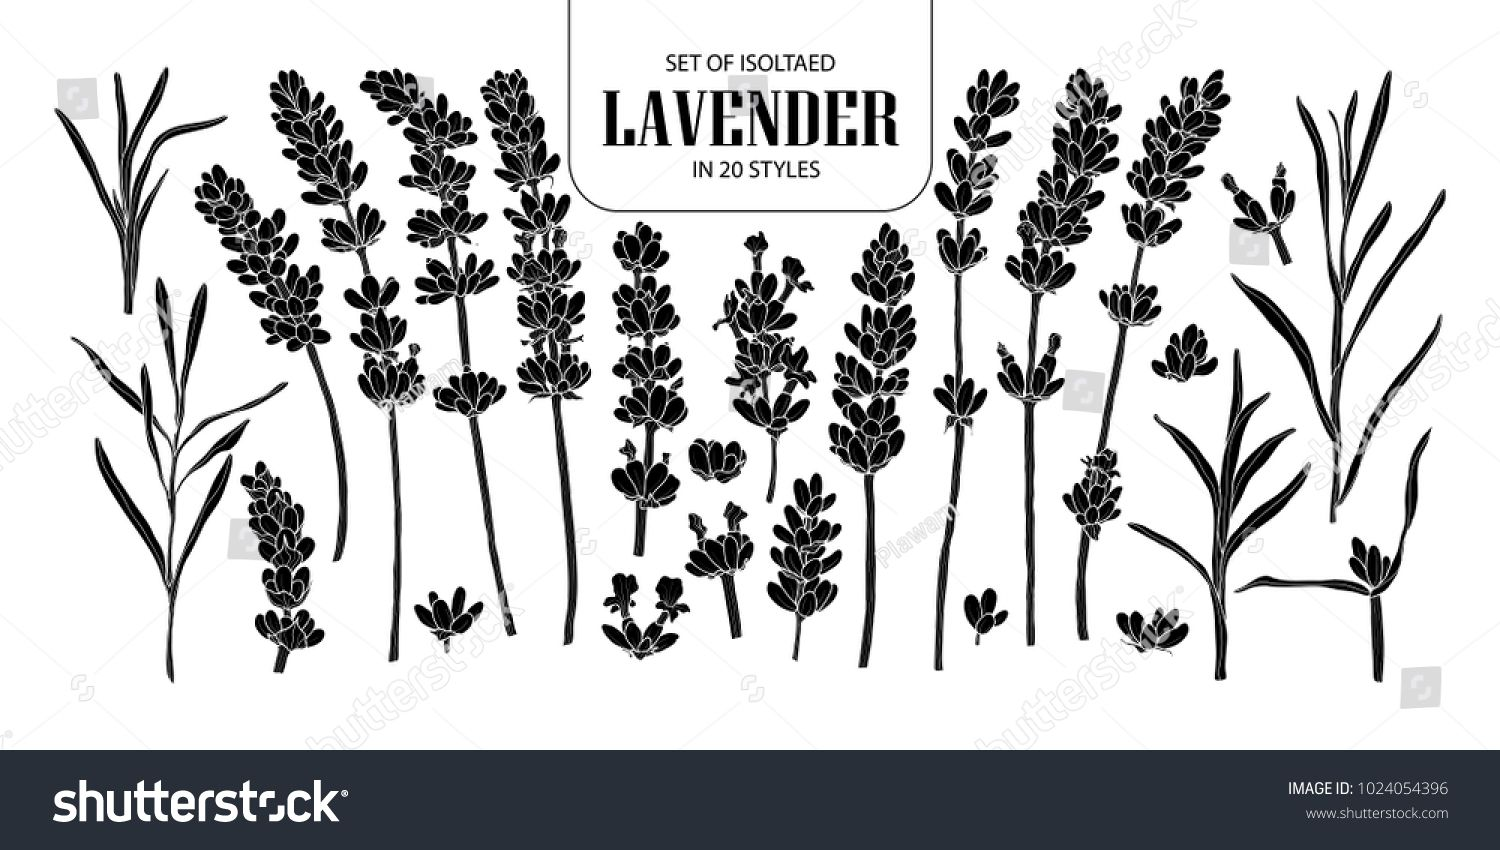 Set Of Isolated Silhouette Lavender In 20 Styles Cute Hand Drawn